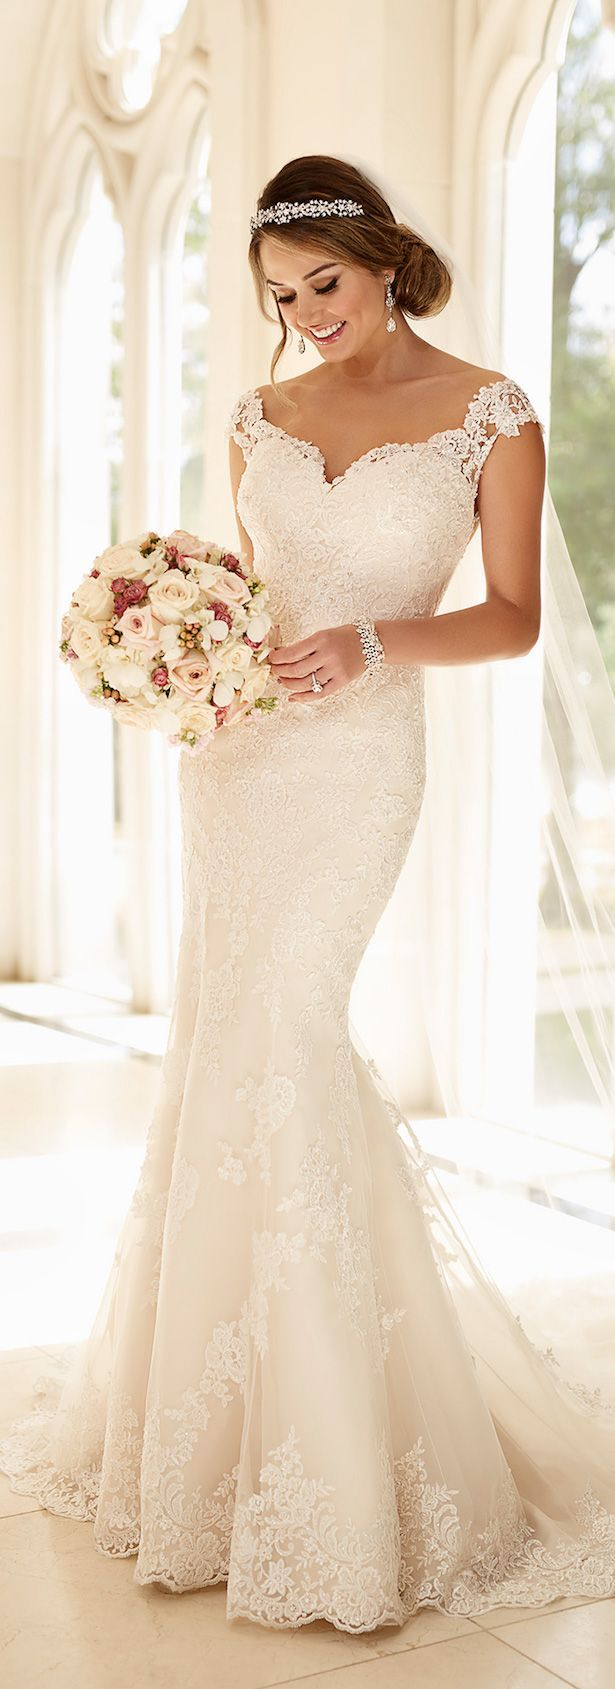 Lace Wedding Dresses For   On Bidorbuy : Wedding dresses vintage